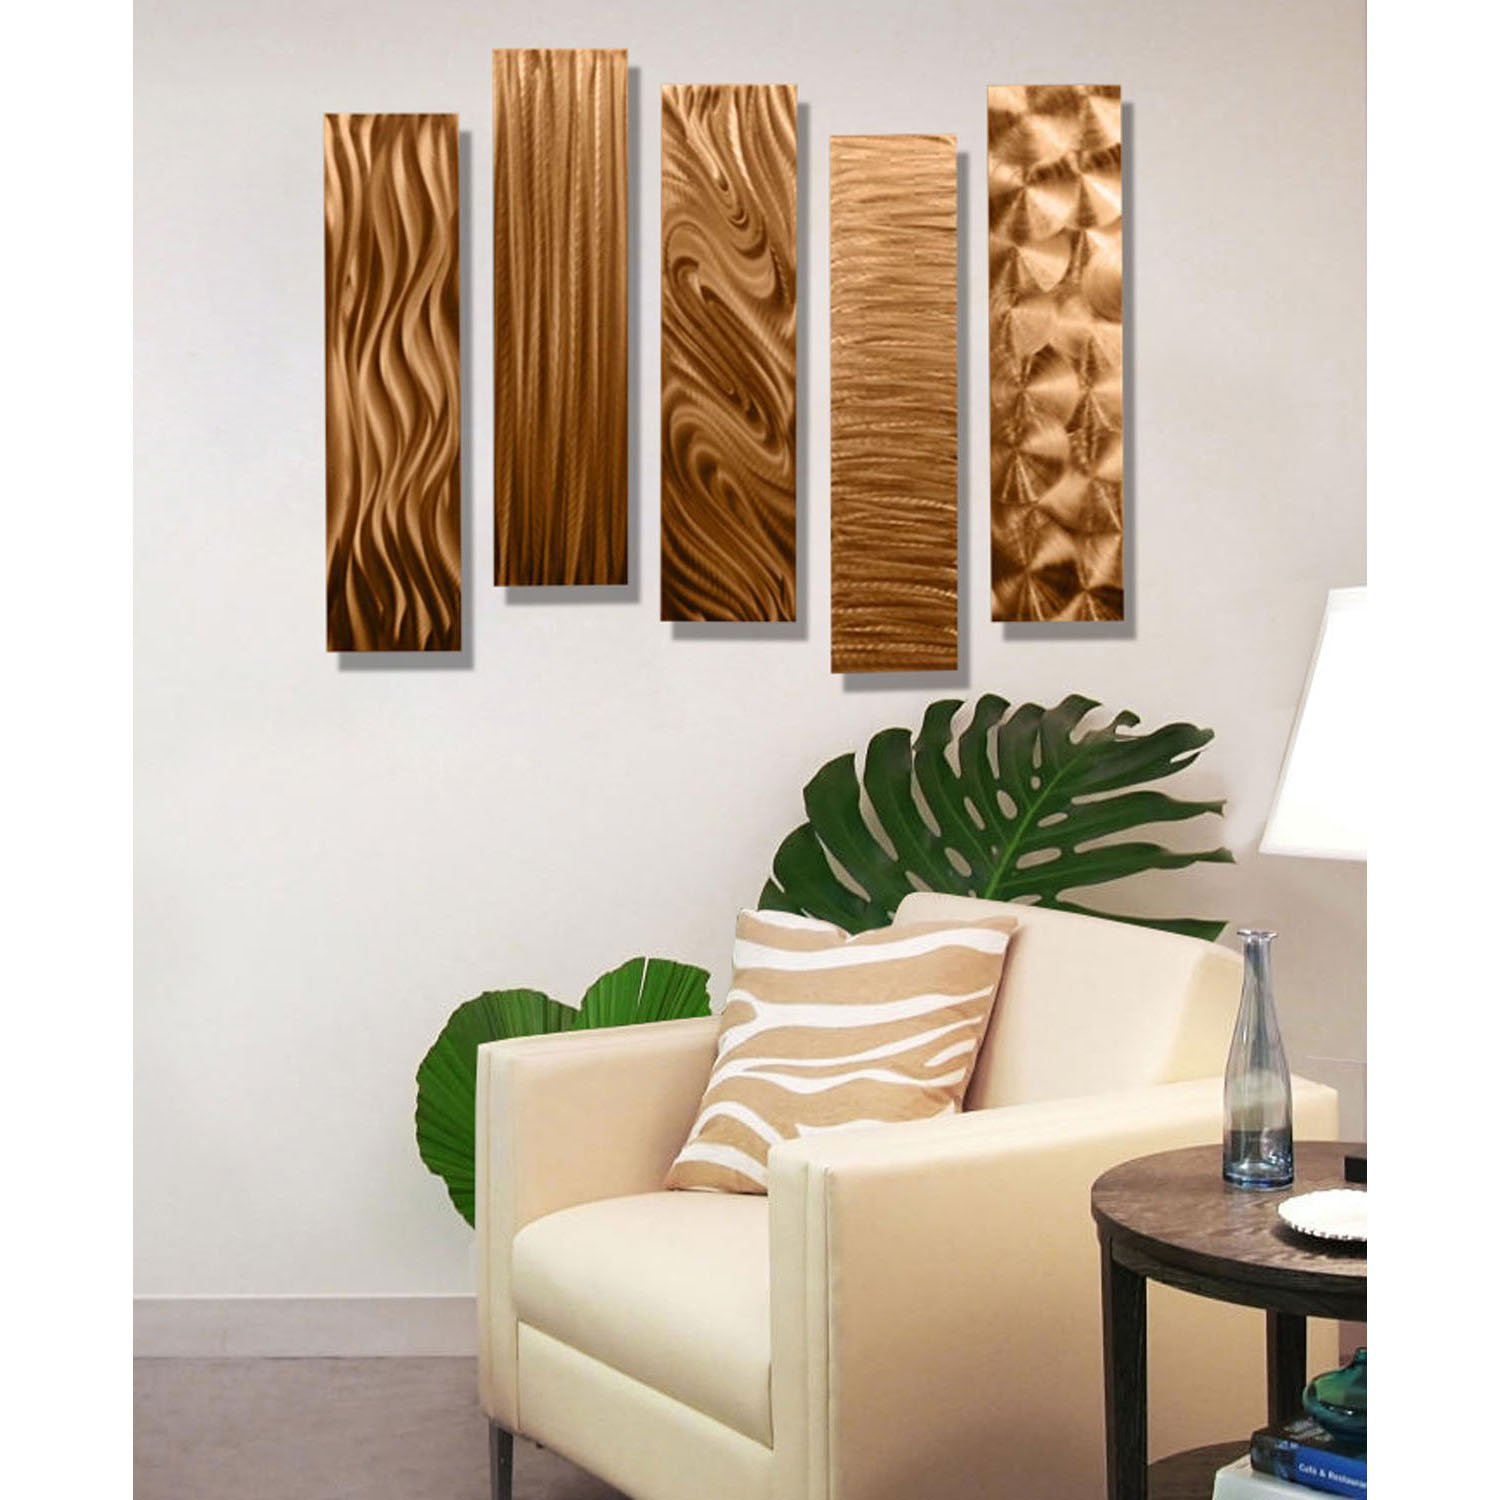 Amazon statements2000 copper metal wall art decor 5 piece amazon statements2000 copper metal wall art decor 5 piece set of modern wall art by jon allen metal art 5 easy pieces copper 24 x 6 each home amipublicfo Image collections